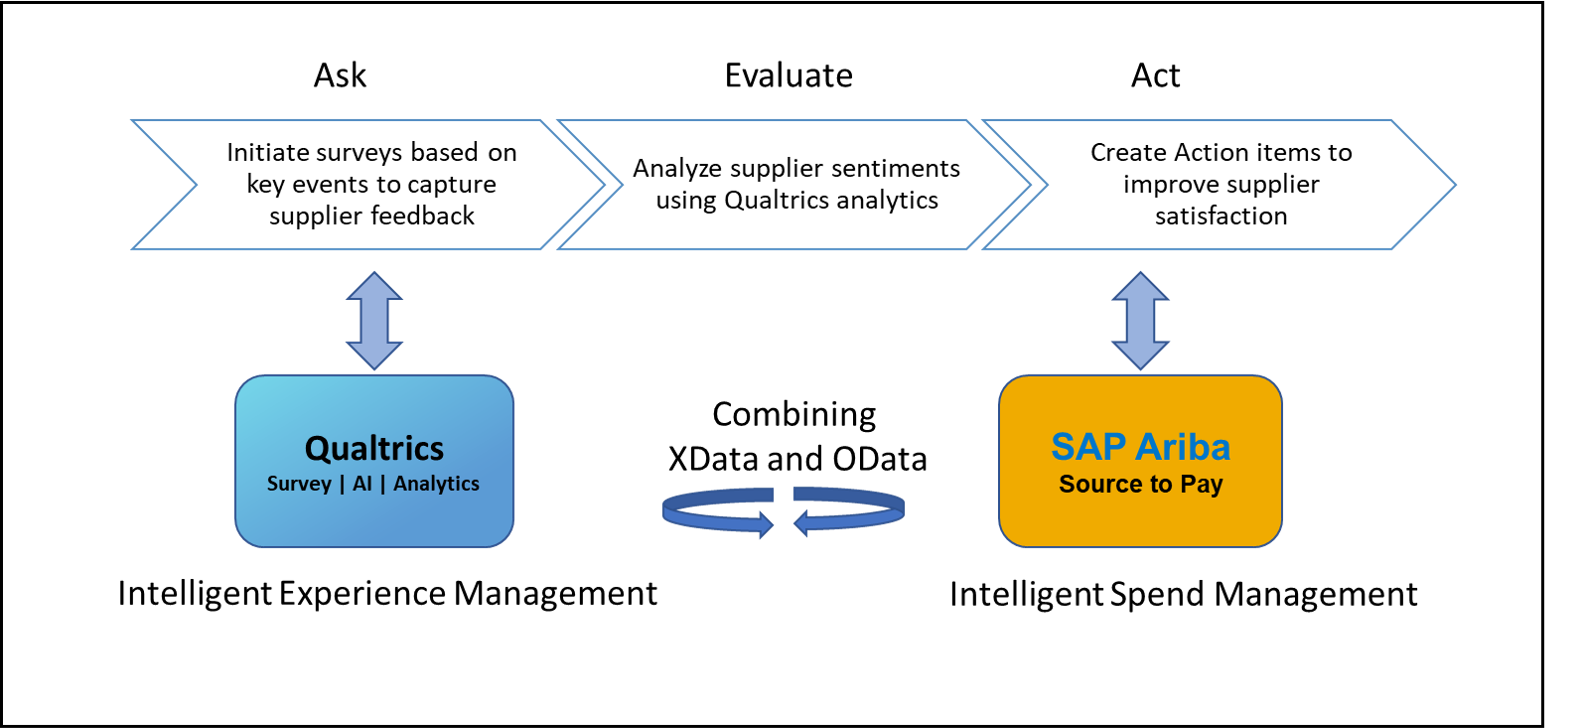 Moving beyond Supplier Performance measurement. Leveraging Supplier Satisfaction using SAP Ariba and Qualtrics